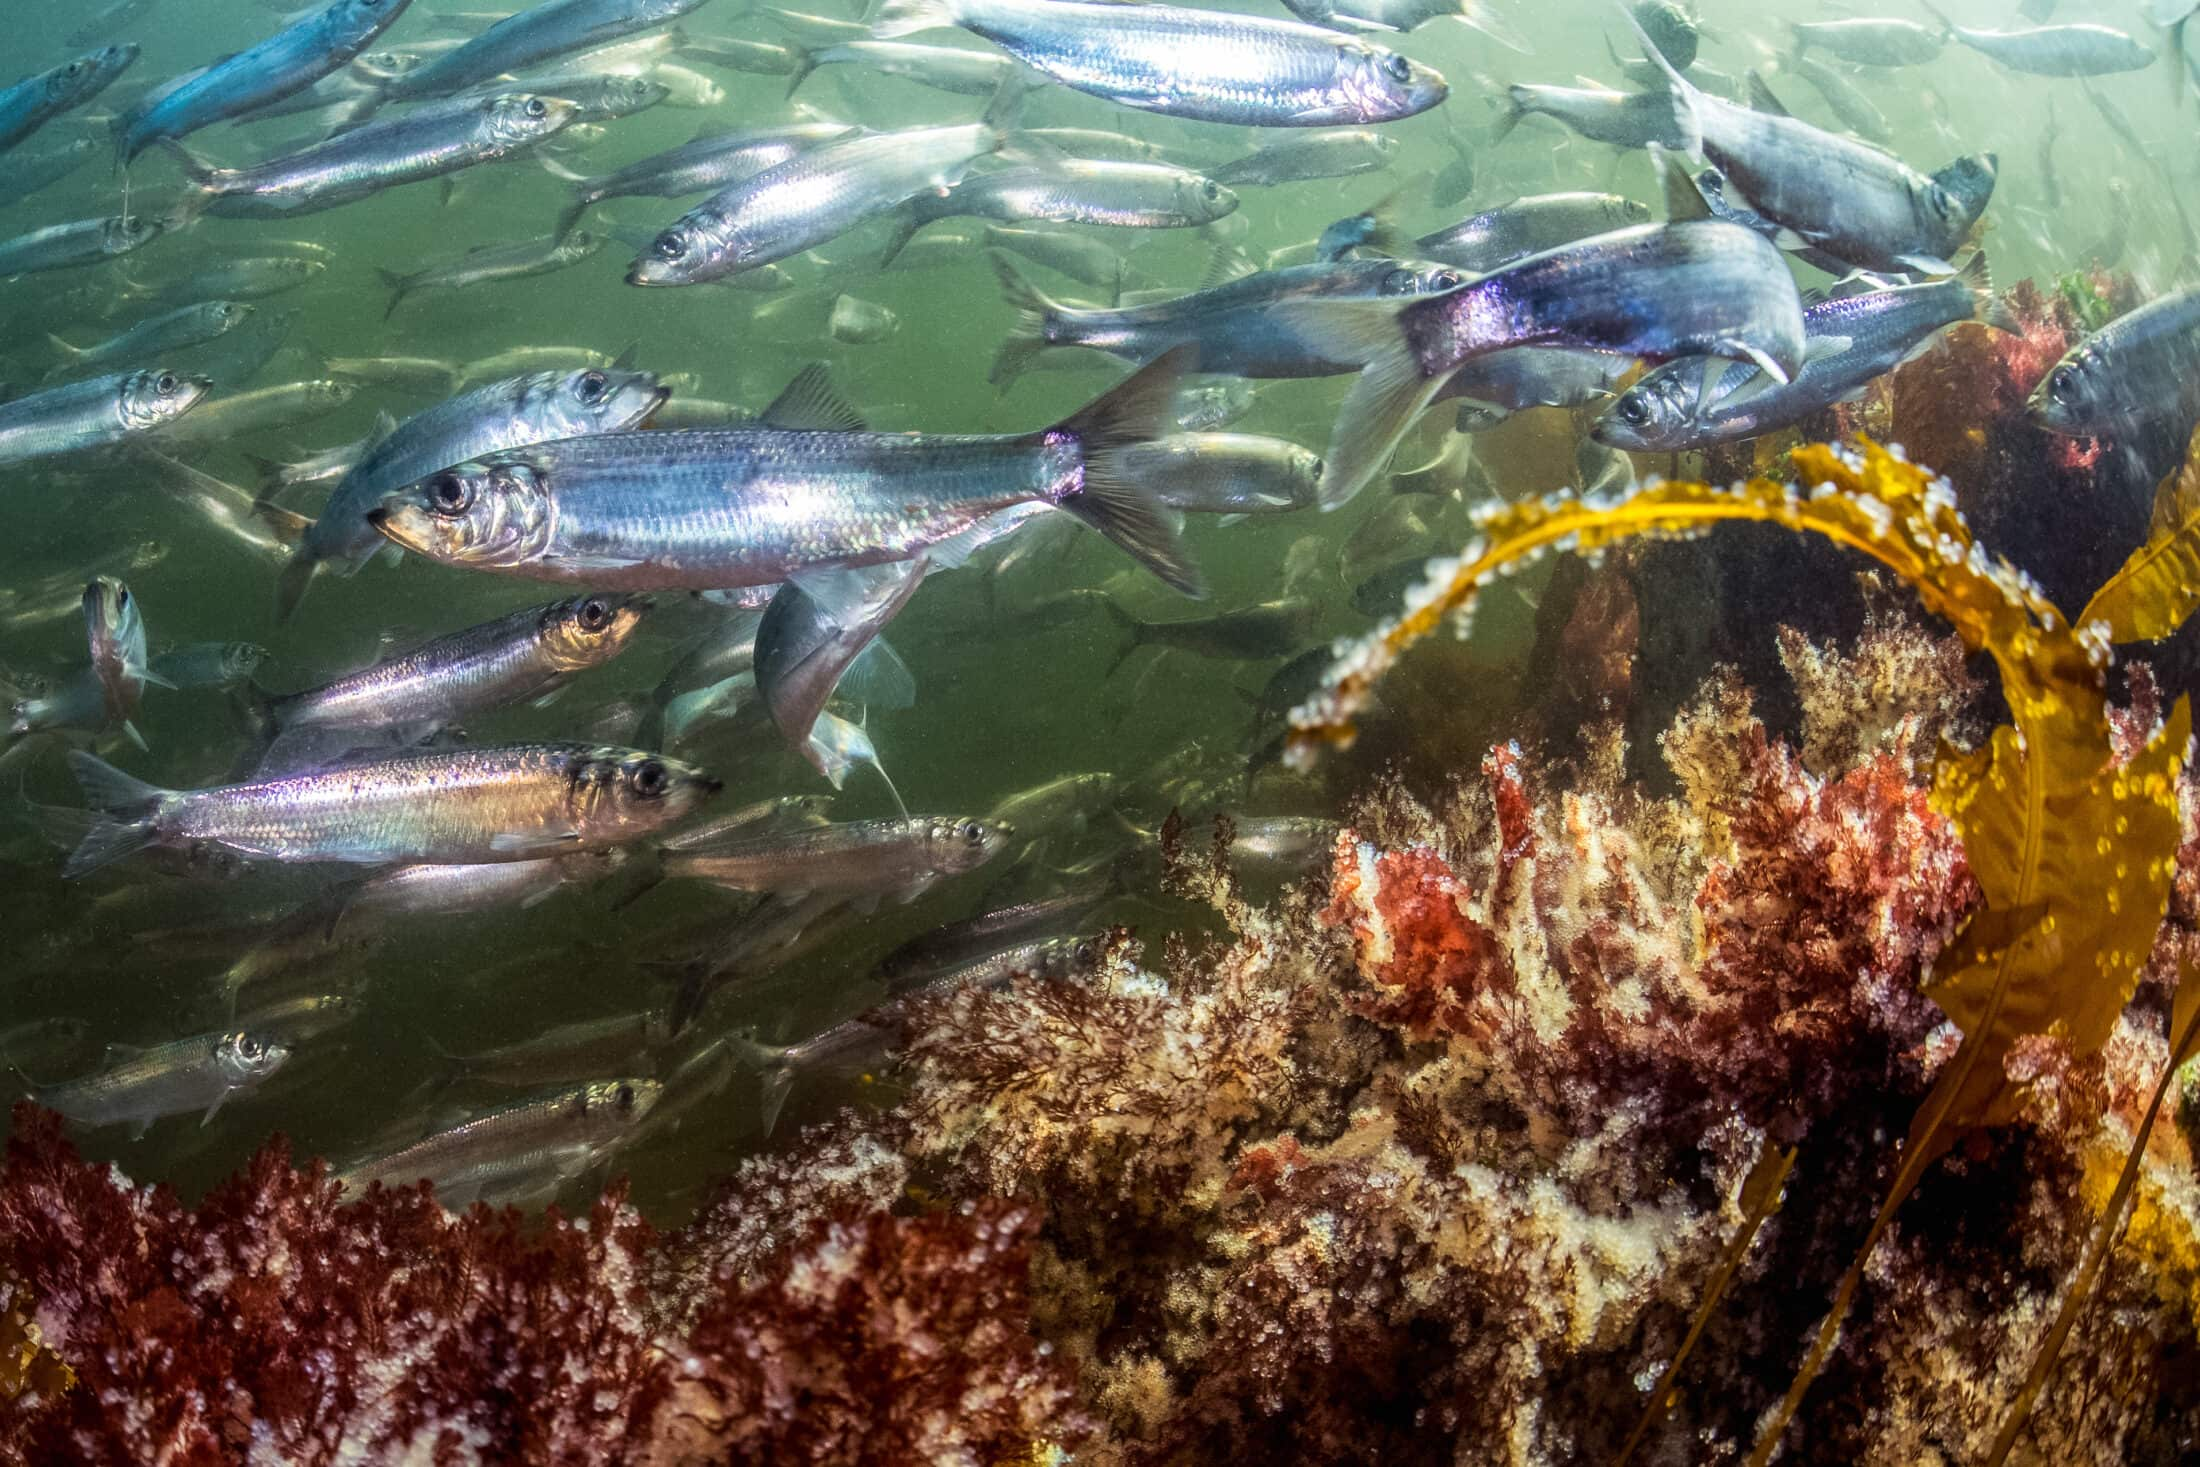 underwater view of Pacific herring